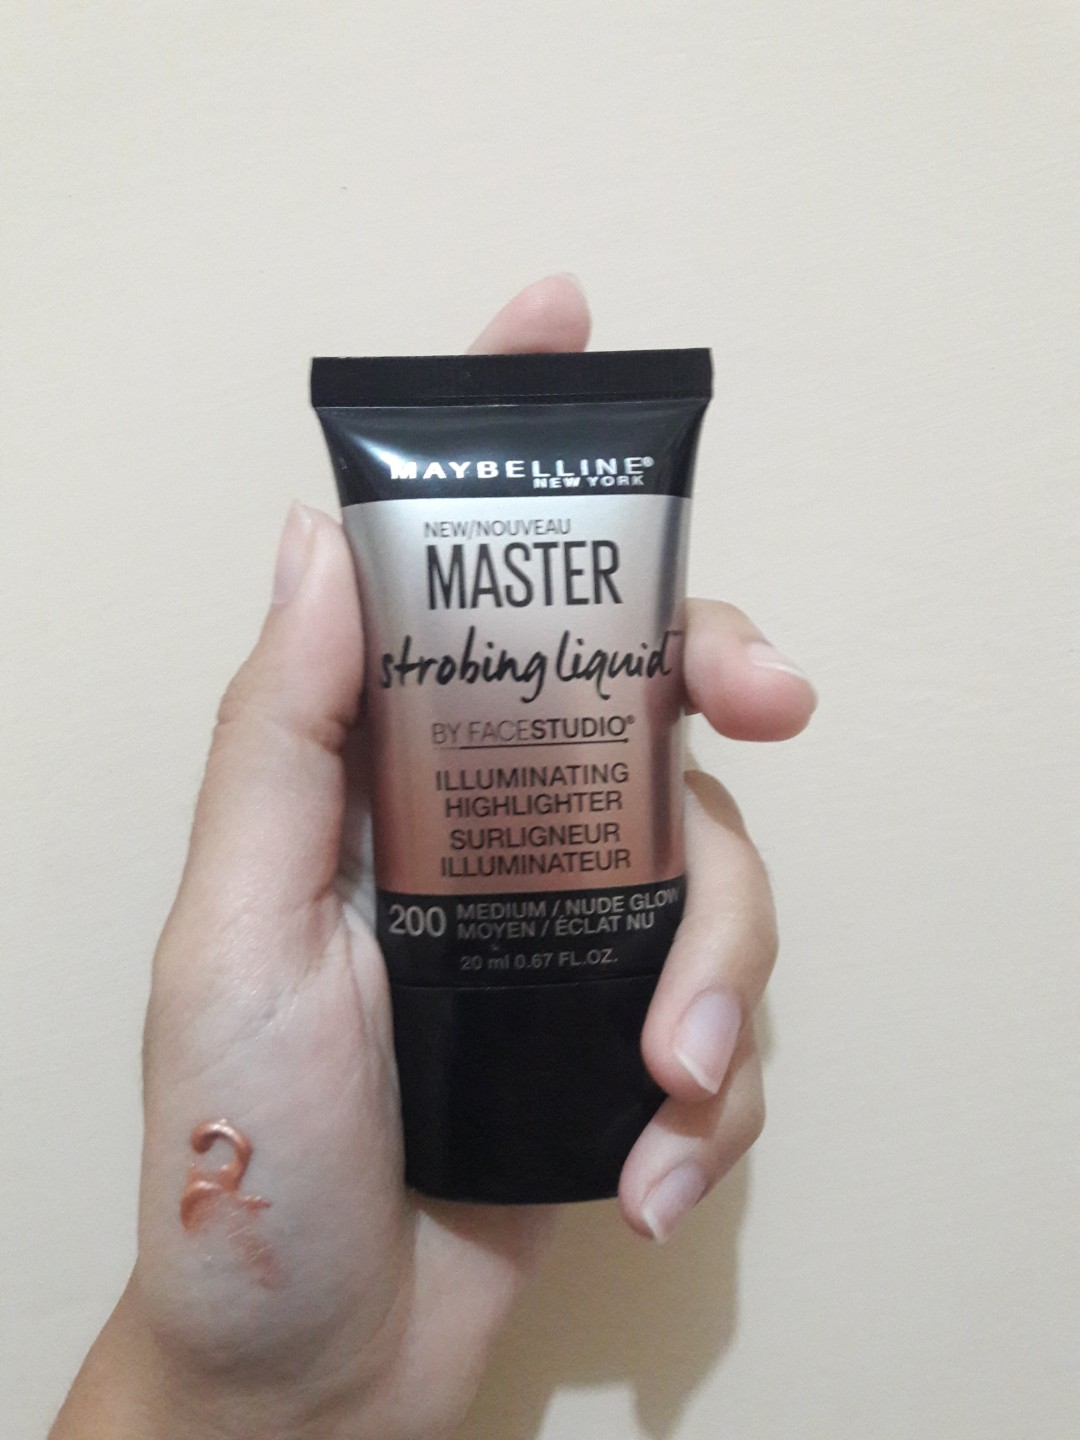 Master Strobing Cream - Medium/Nude Glow